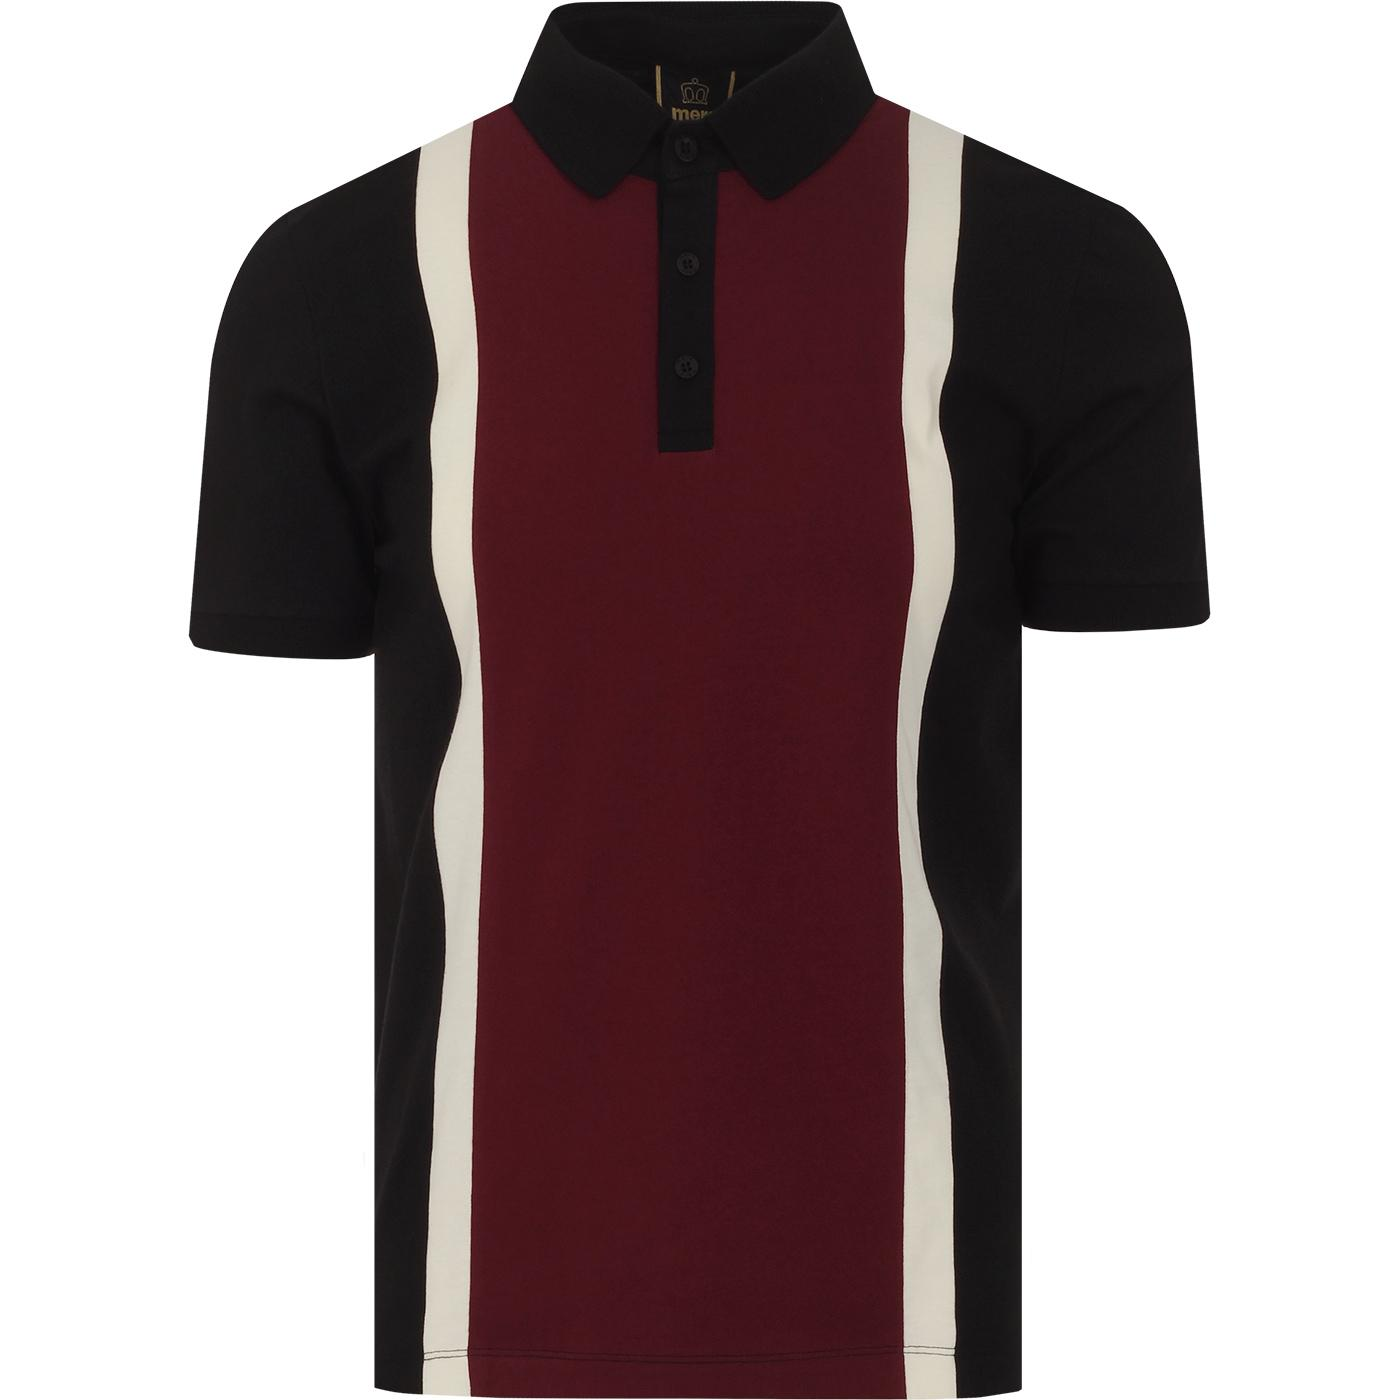 Atlas MERC Retro Mod Stripe Block Panel Polo Top B